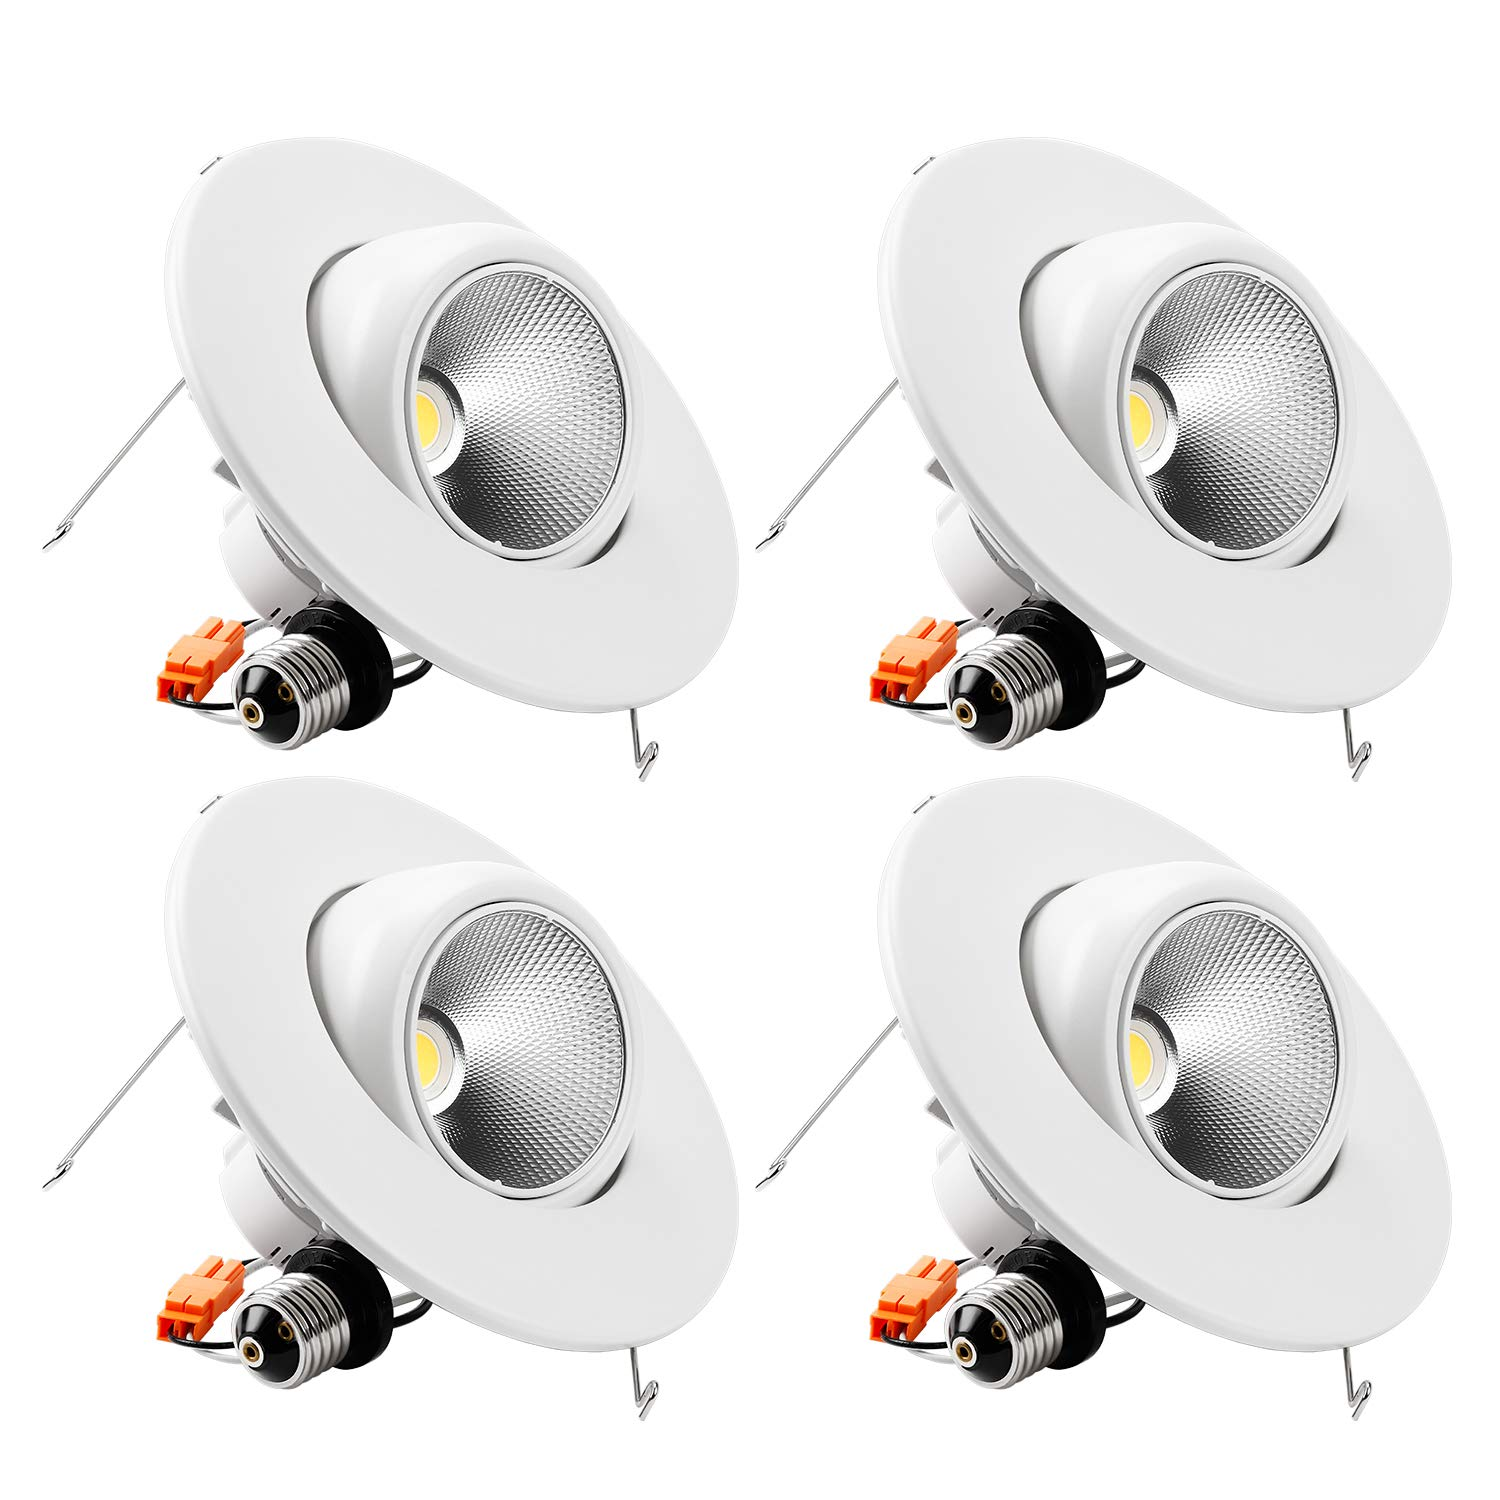 TORCHSTAR High CRI90+ 6inch Dimmable Gimbal Recessed LED Downlight, 10W (75W Equiv.), Energy Star, 5000K Daylight, 950lm, Adjustable LED Retrofit Lighting Fixture, 5 Years Warranty OKTDRCDL-10W6E-D50H